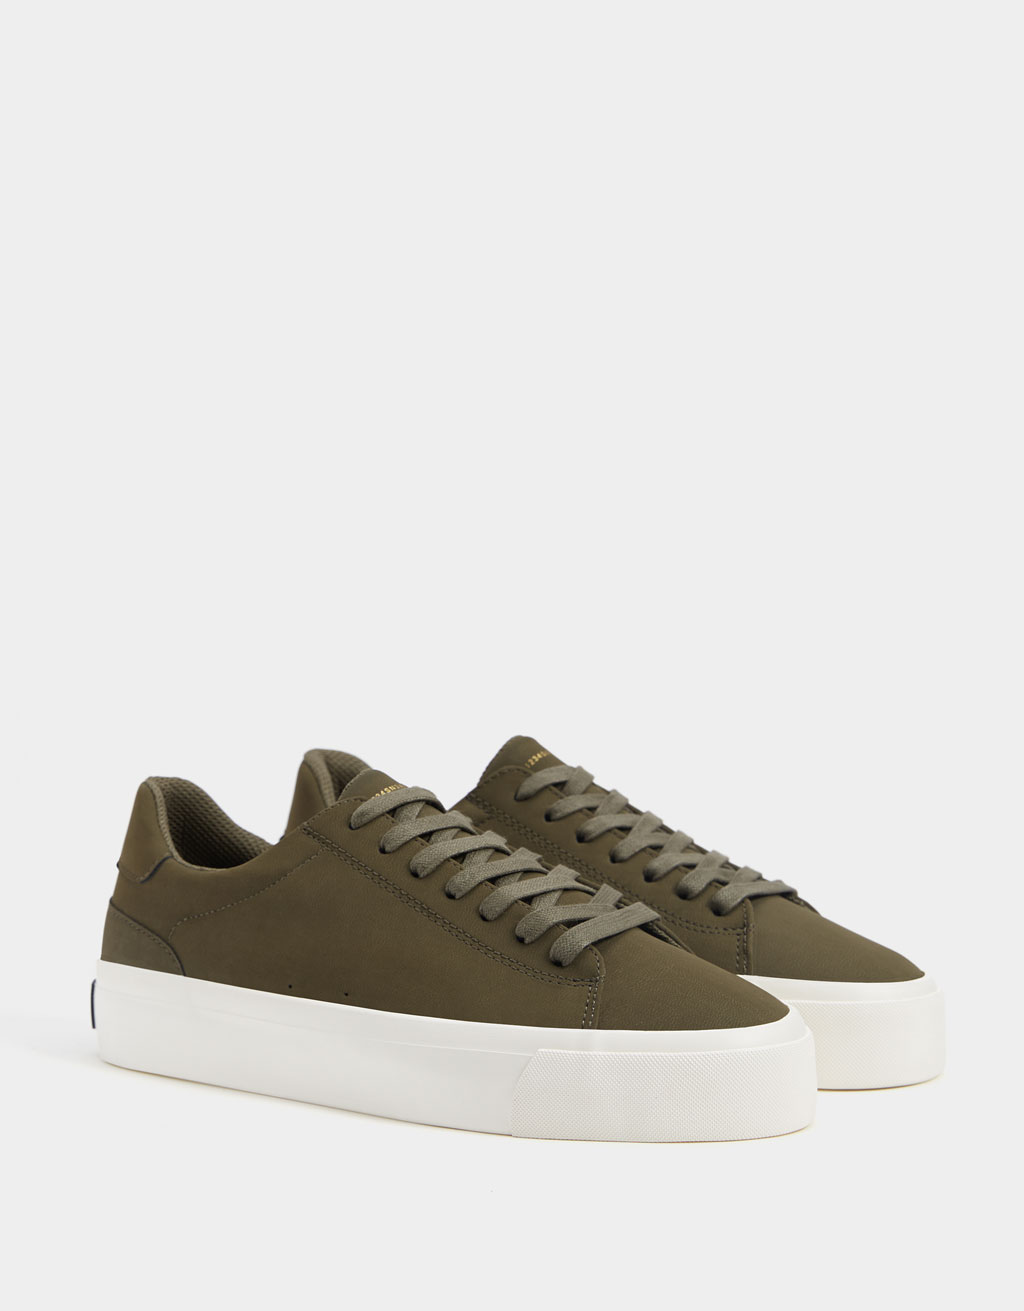 Kaki herensneakers met veters